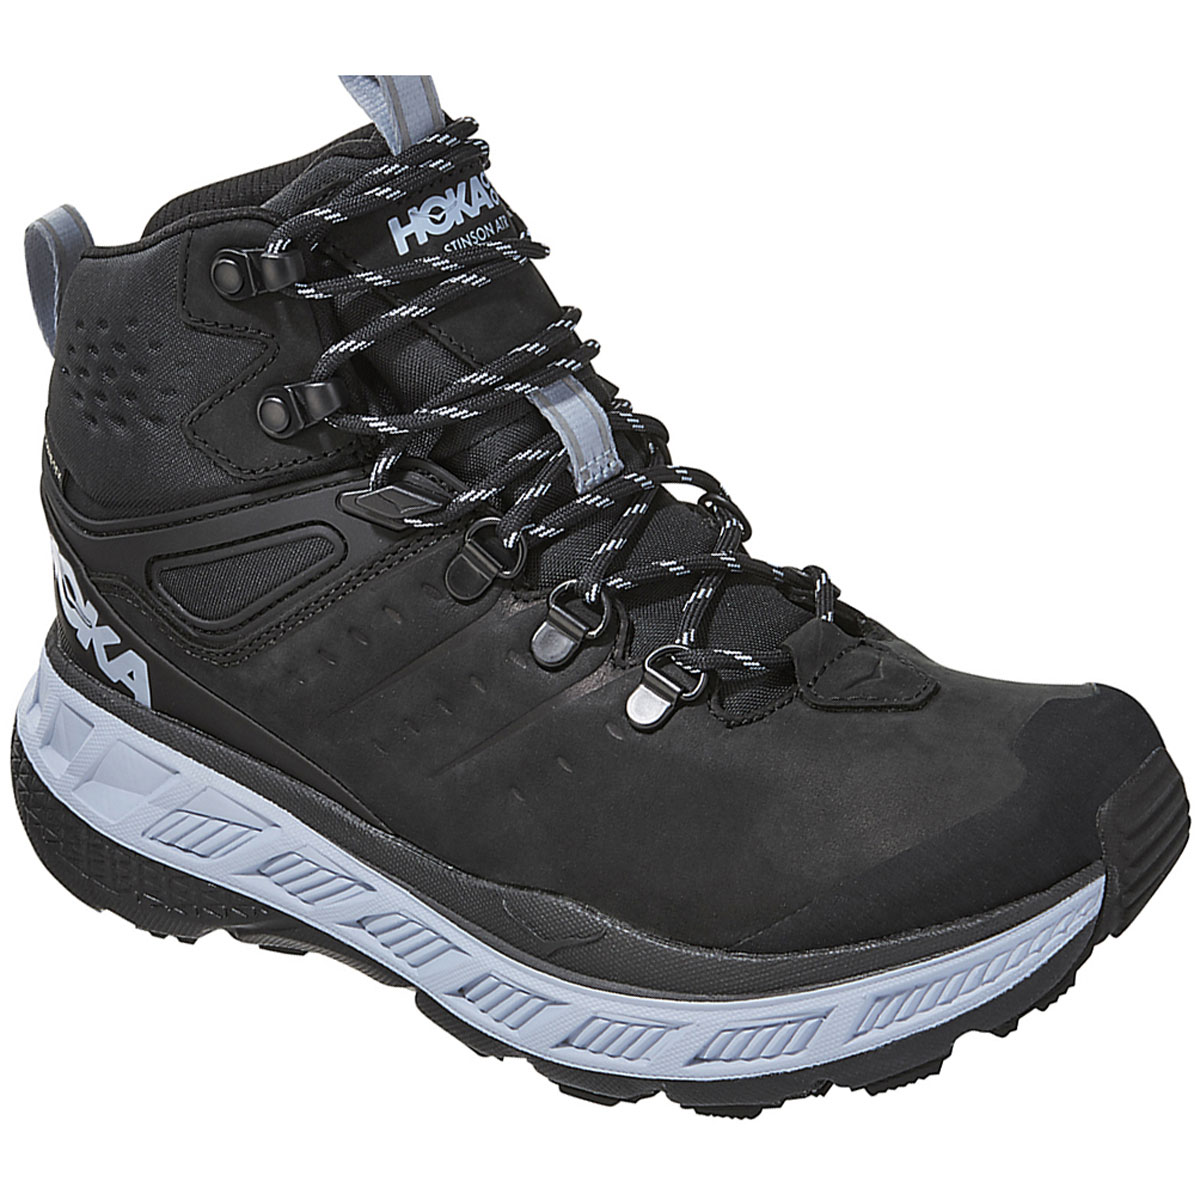 Women's Hoka One One Stinson Mid Gore-Tex Trail Running Shoe - Color: Anthracite/Heather - Size: 5 - Width: Regular, Anthracite/Heather, large, image 2